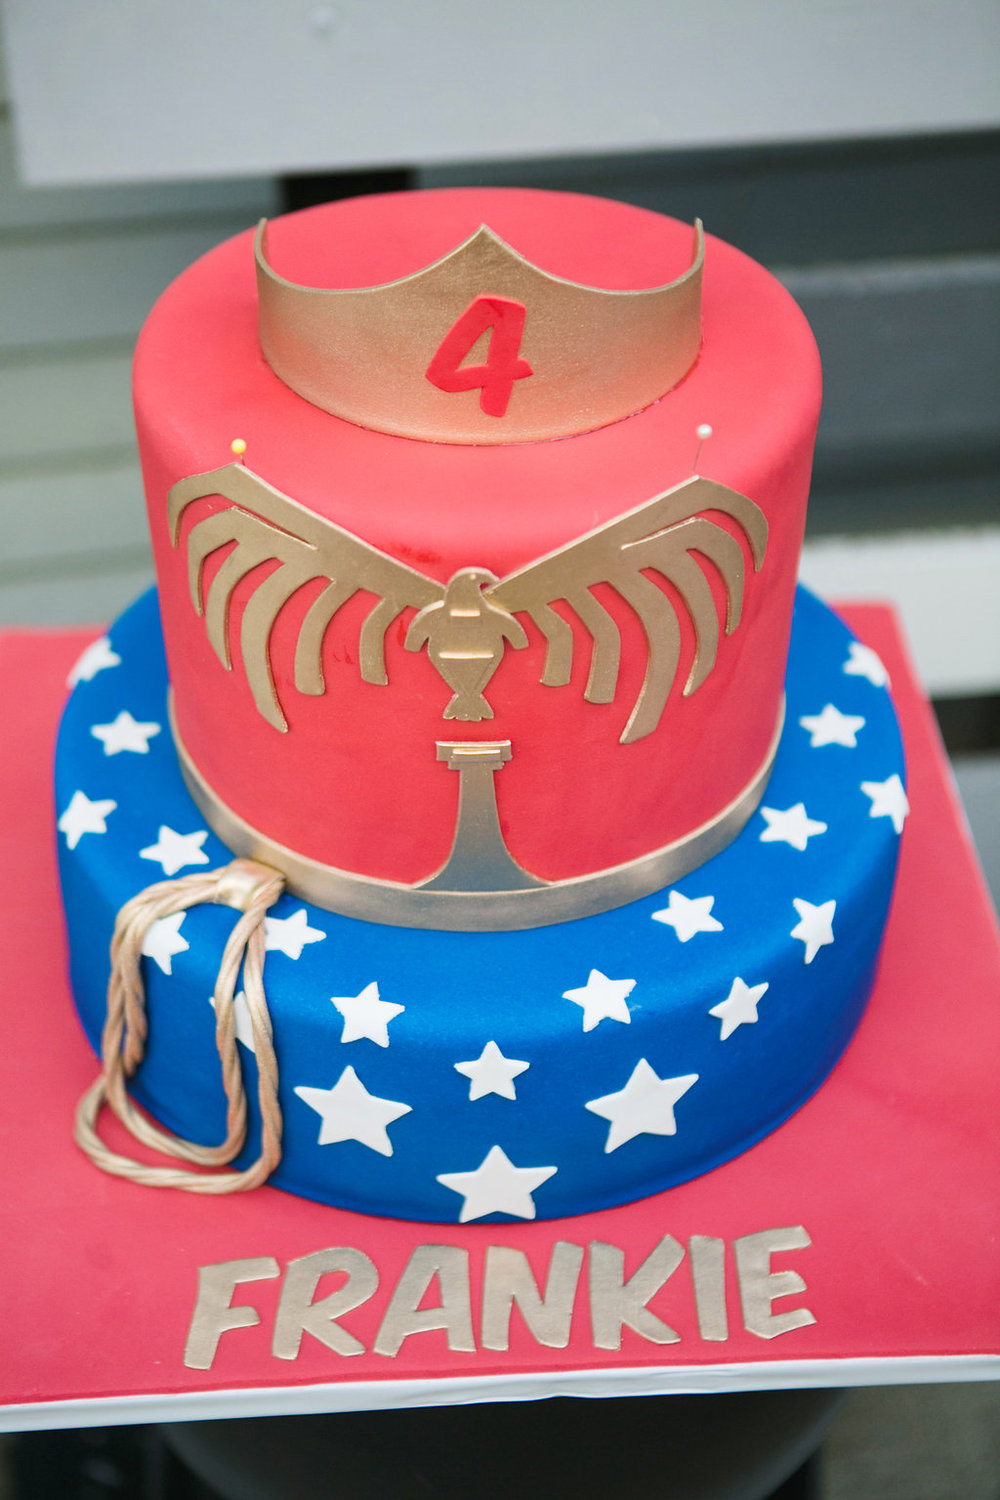 37178-wonderwomansuperheroicecreampartyperfectcakeforthissupergirl.jpg